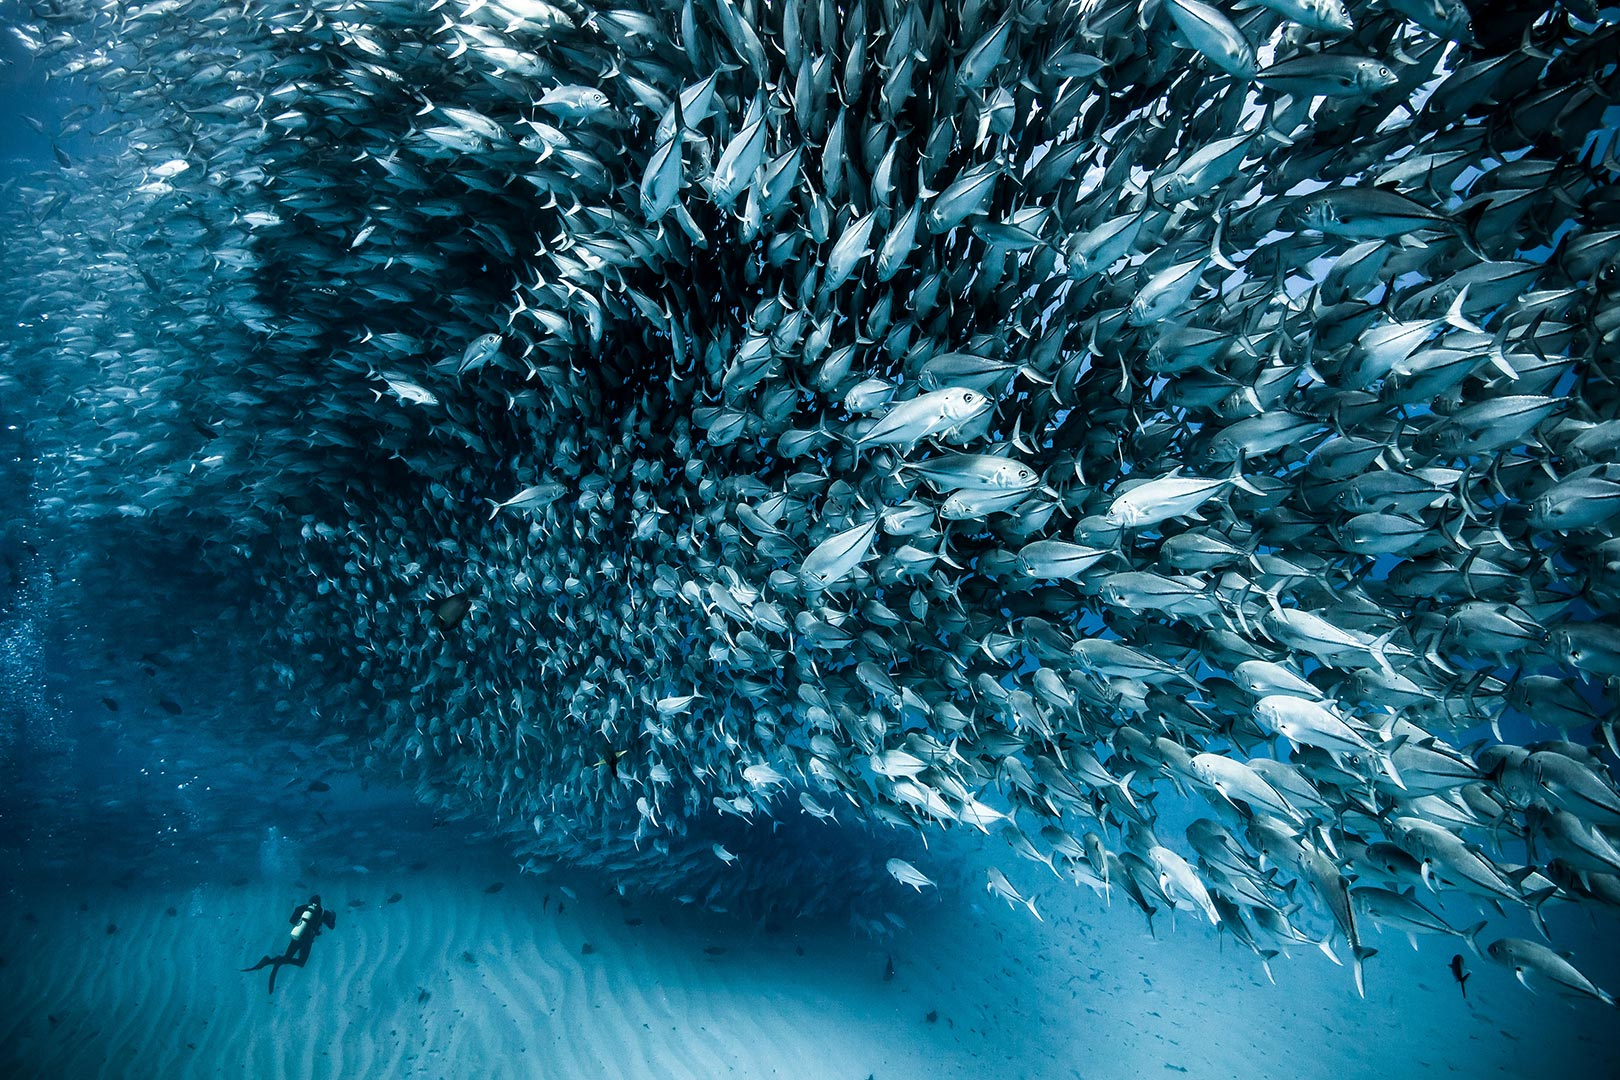 Picture of a diver near a giant school of fish in the Sea of Cortez, Baja California, Mexico